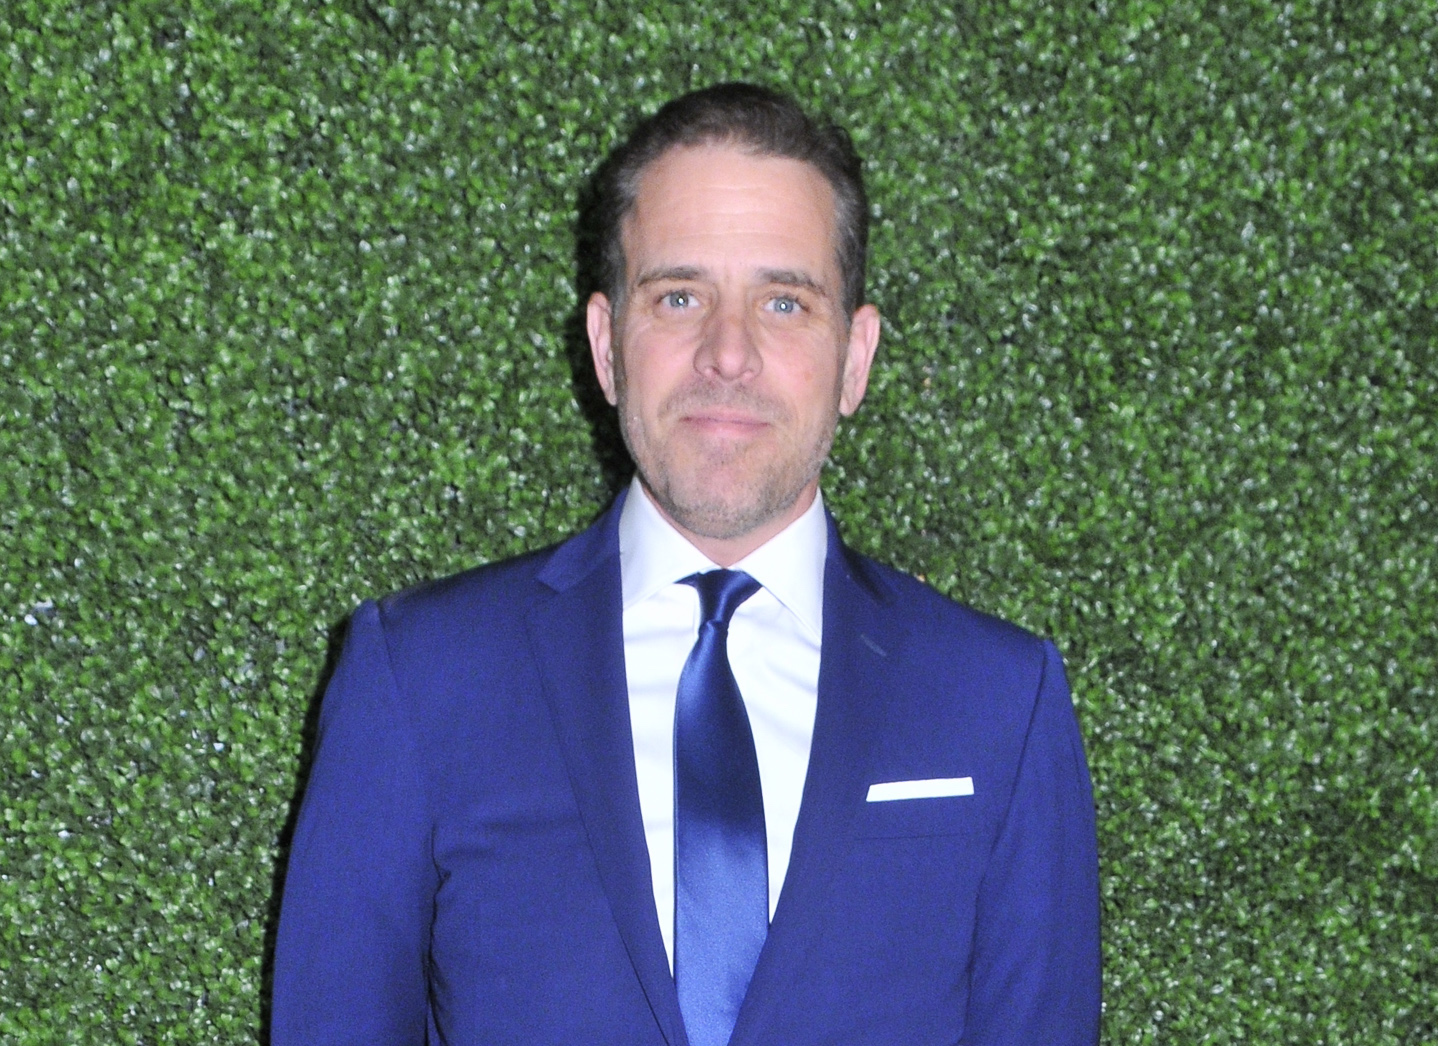 Art Industry News: Hunter Biden Criticized for Plans to 'Meet With Potential Art Buyers' (A.K.A Attend His Exhibition Opening) + Other Stories